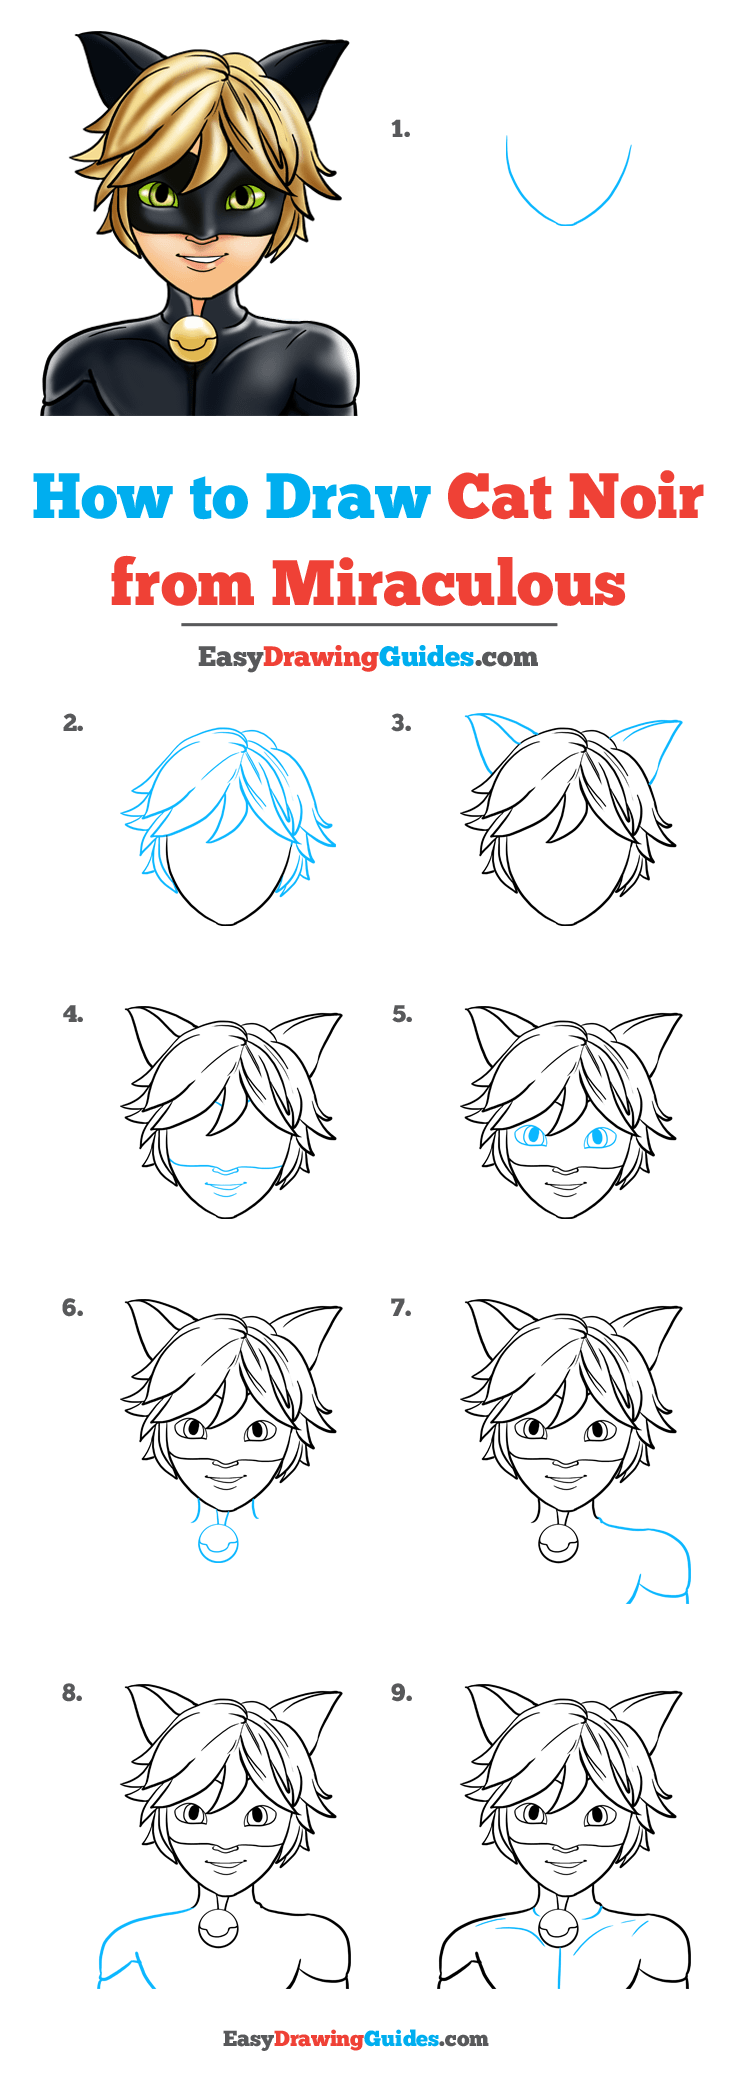 How to Draw Cat Noir from Miraculous Step by Step Tutorial Image